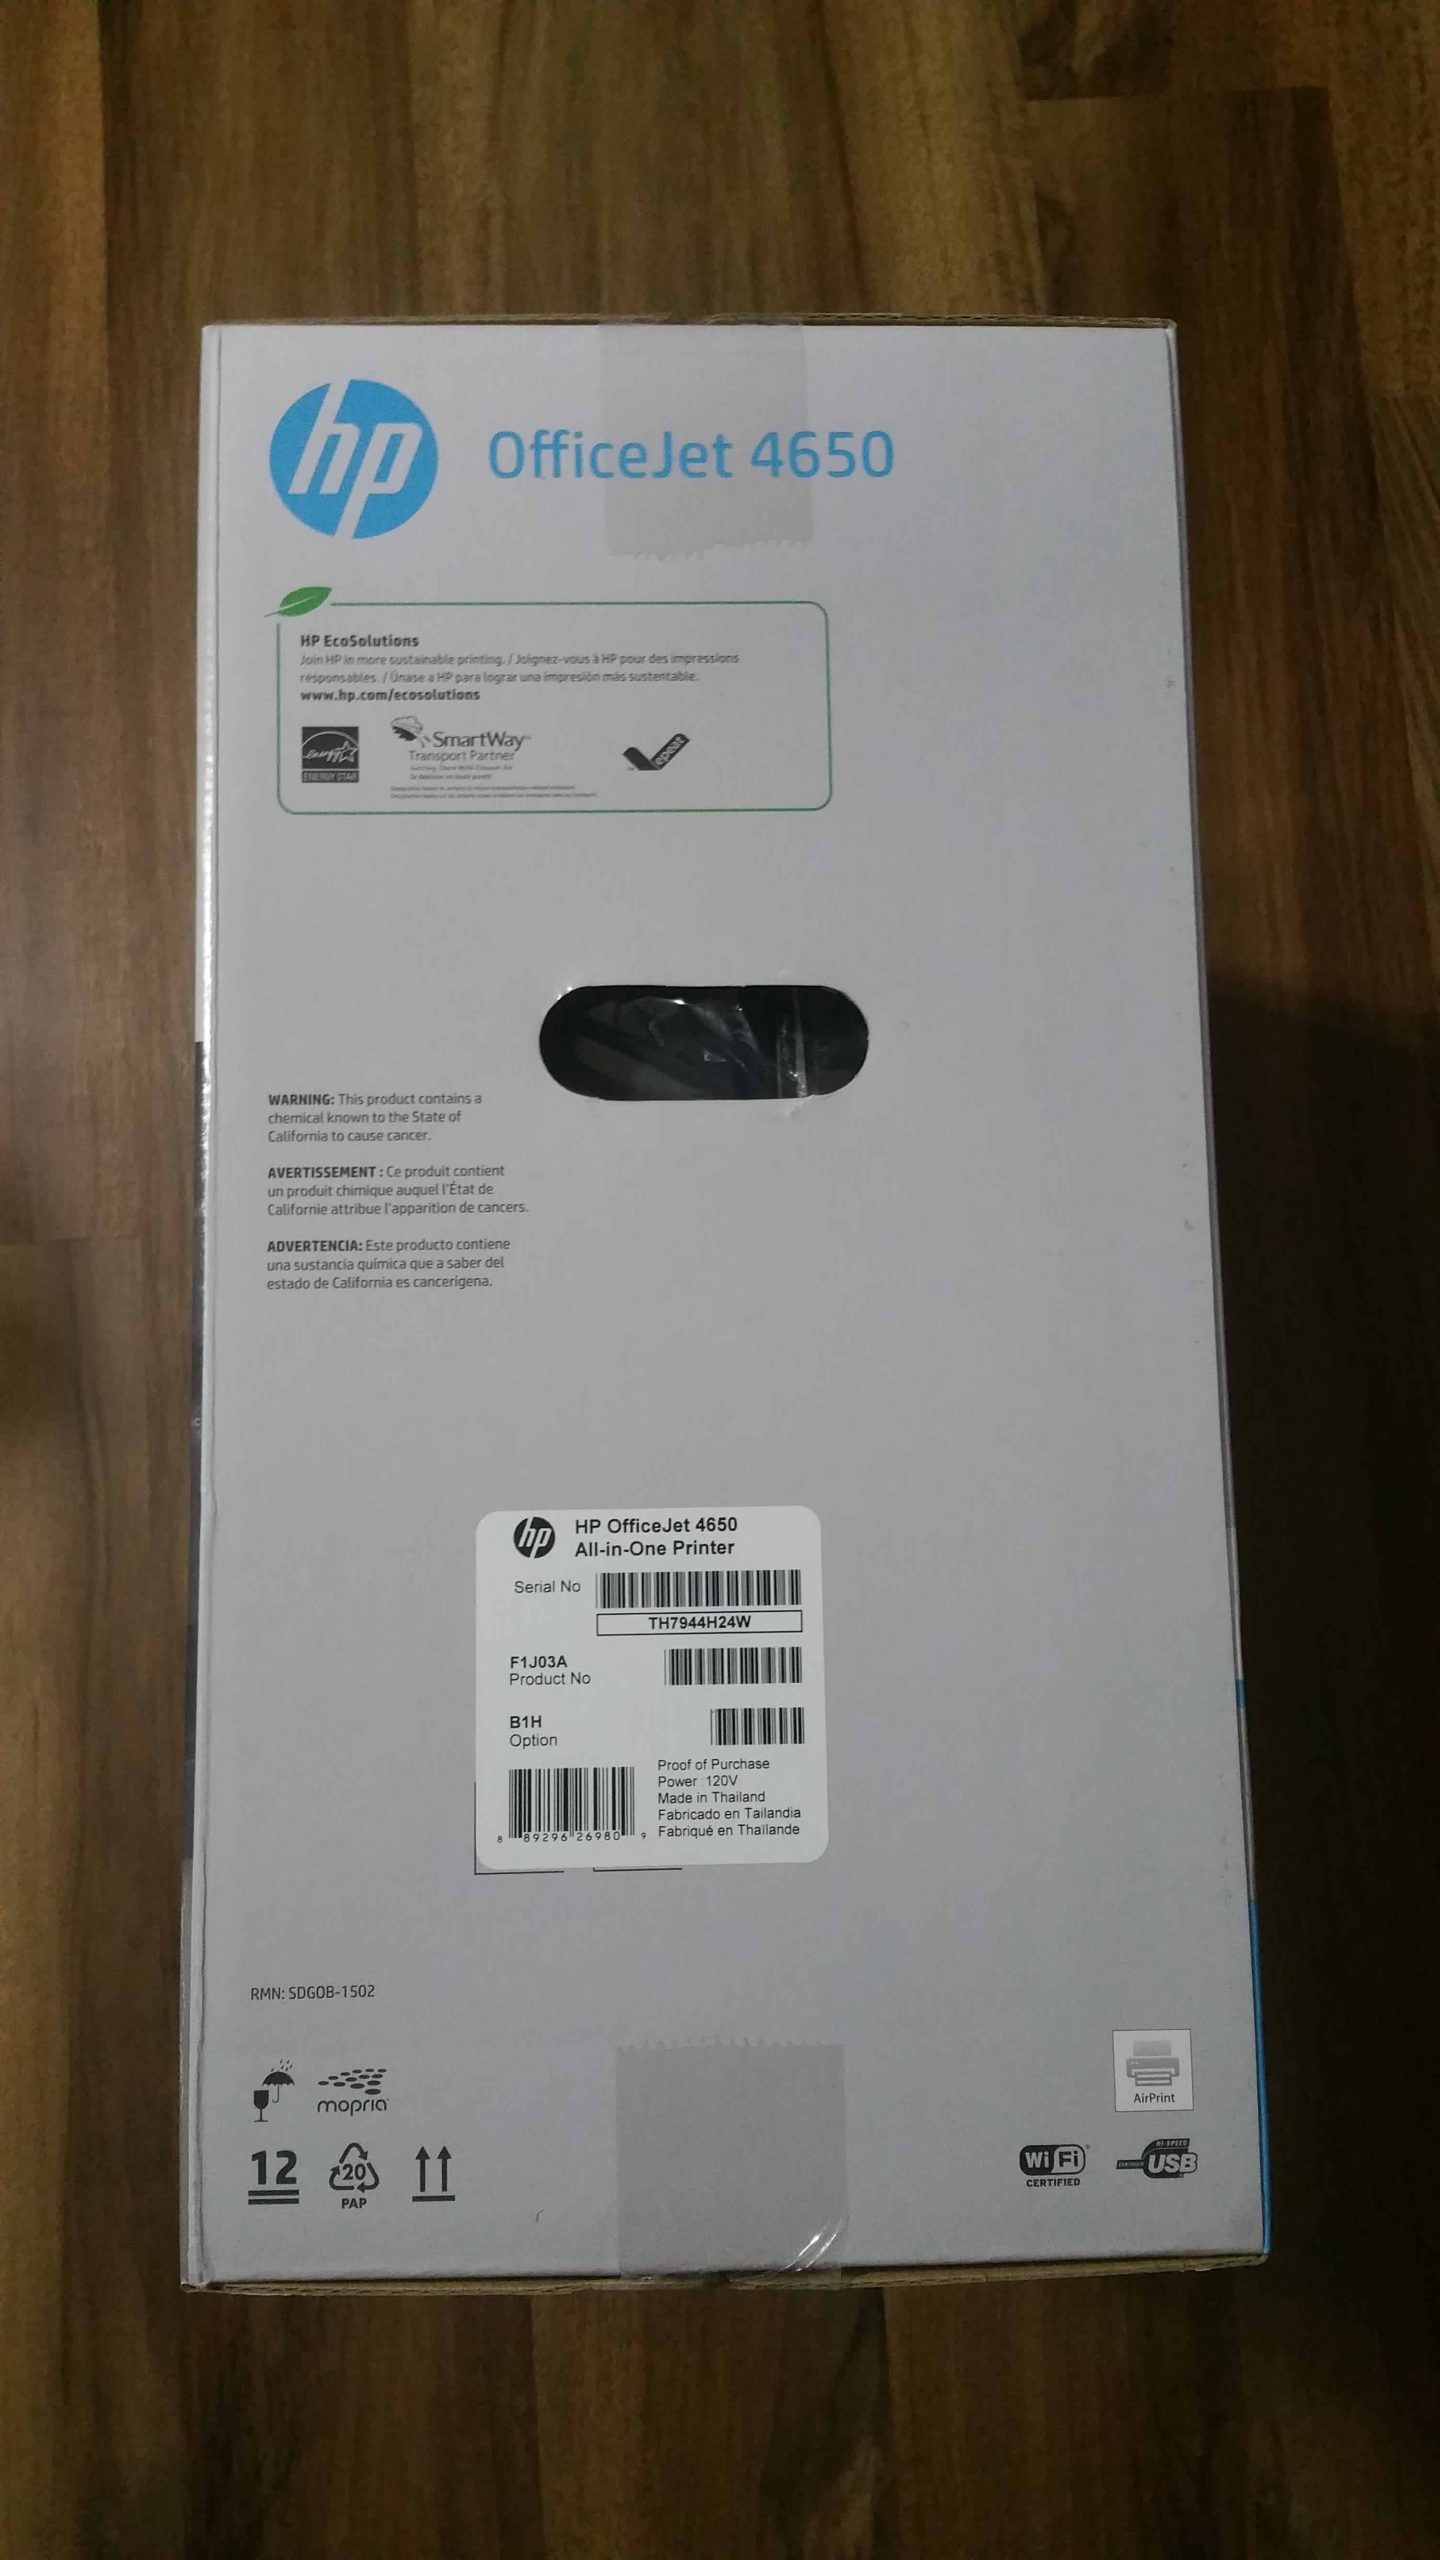 HP OfficeJet 4650 - 3